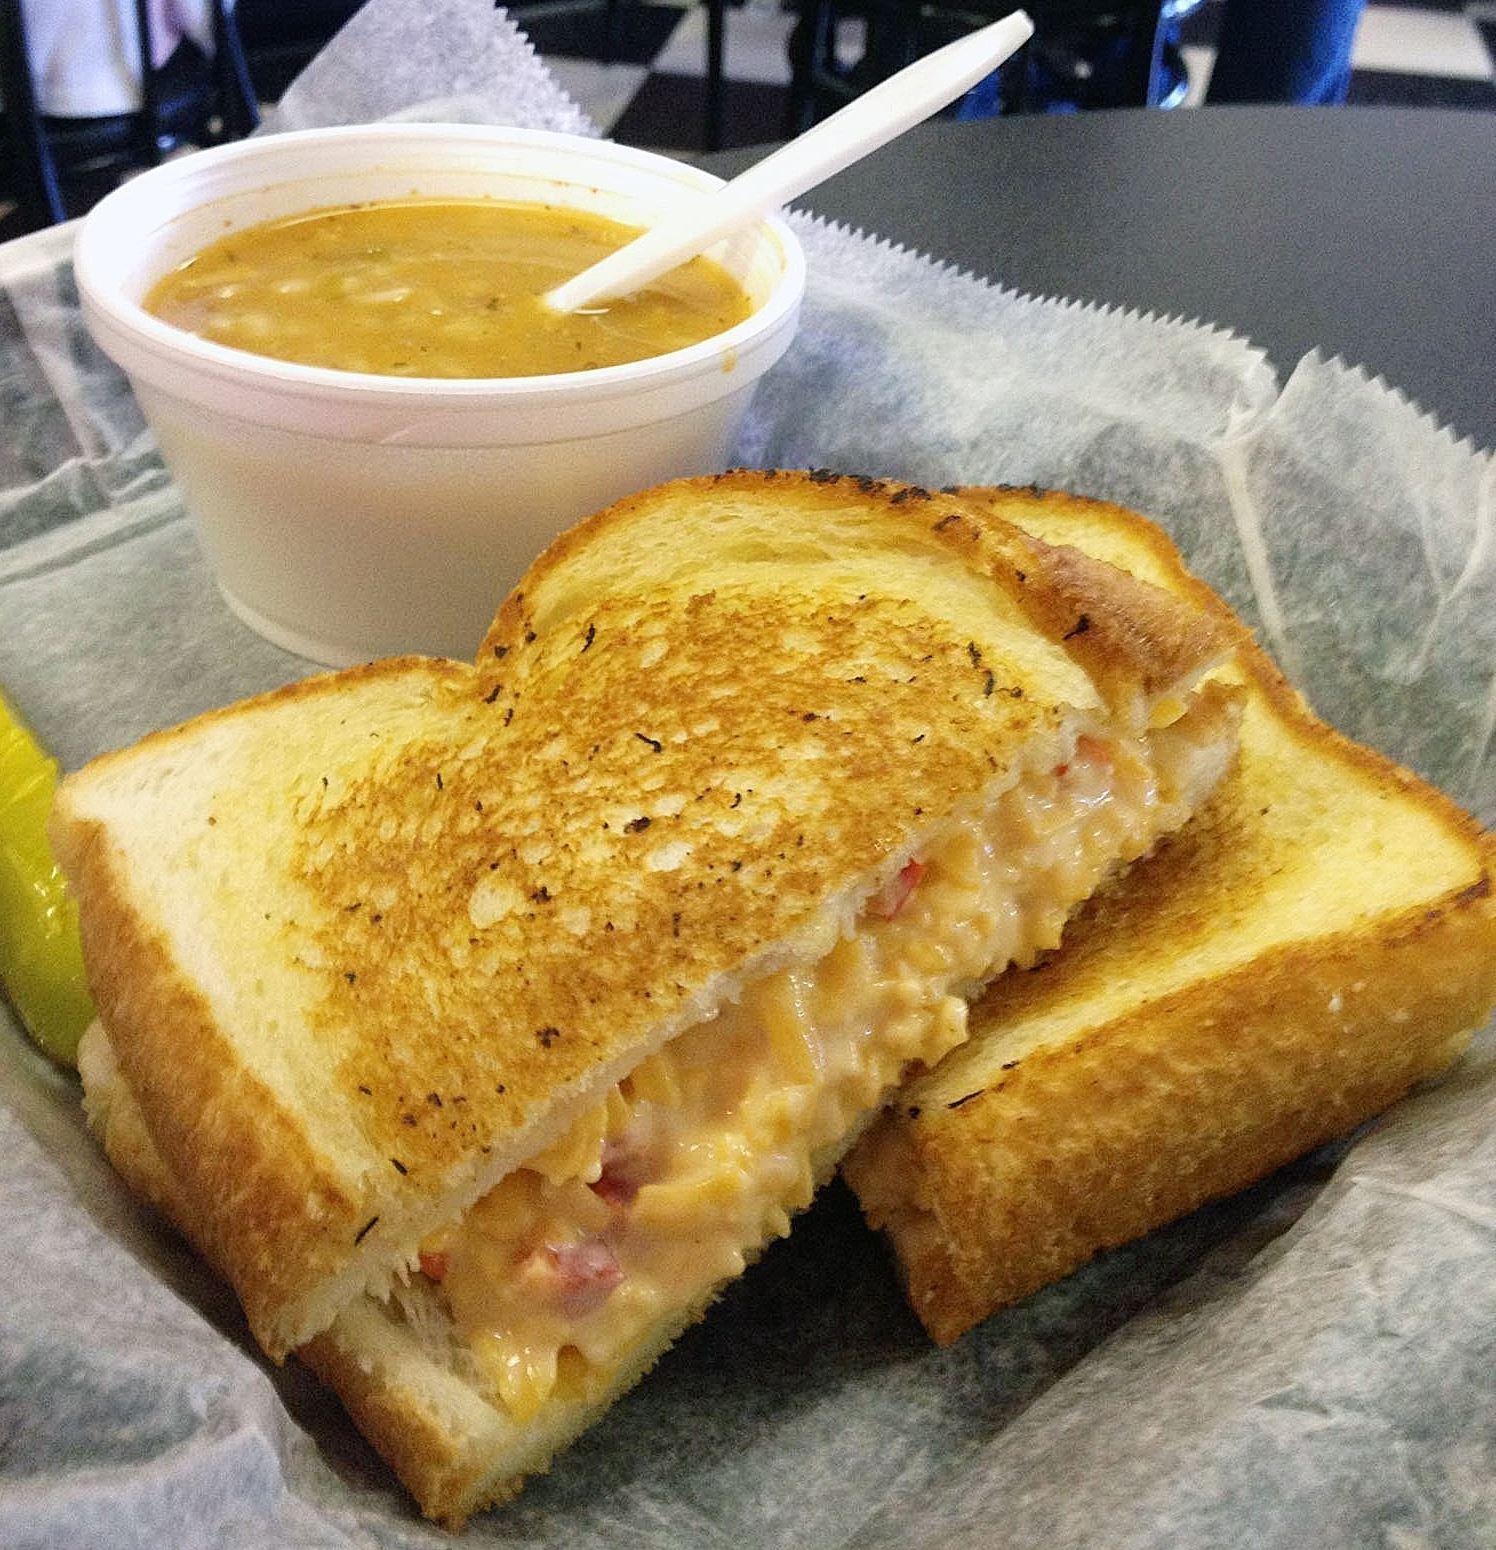 pimiento cheese sandwich from Walton Way Deli The pimiento cheese sandwich from the Walton Way Deli in Augusta, Ga., rumored to be one among many providers of sandwiches to the Masters Tournament, is flavorful with garlic pepper and a pinch of sugar.